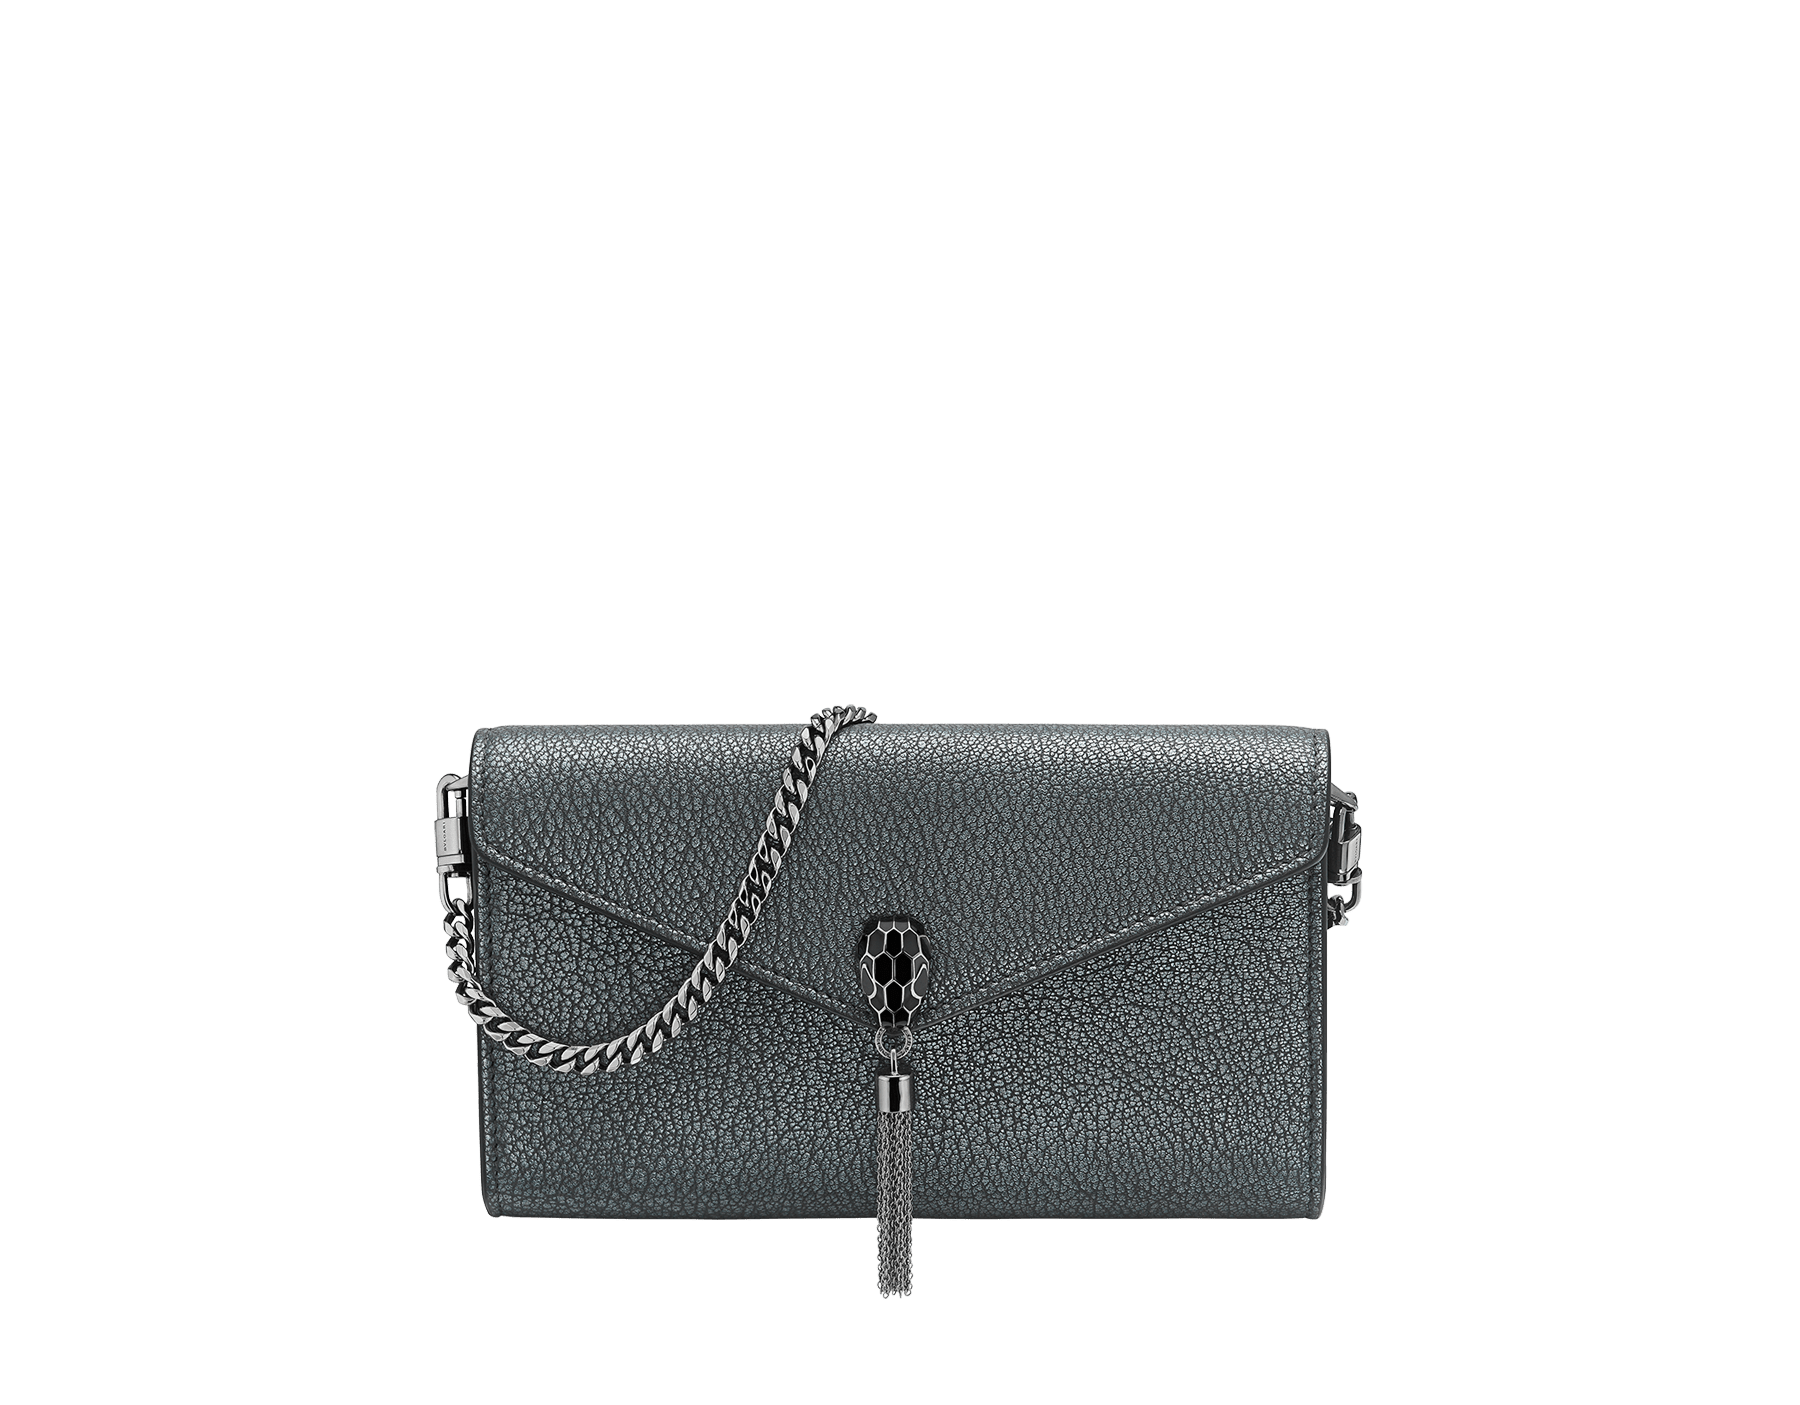 """""""Serpenti Forever"""" small pochette in charcoal diamond goatskin with a pearled effect and black nappa leather. Iconic snakehead stud closure a with tassel in dark ruthenium plated brass, enamelled in matte and shiny black and finished with black enamel eyes. SMALLPOCHETTE-LEATHER image 1"""